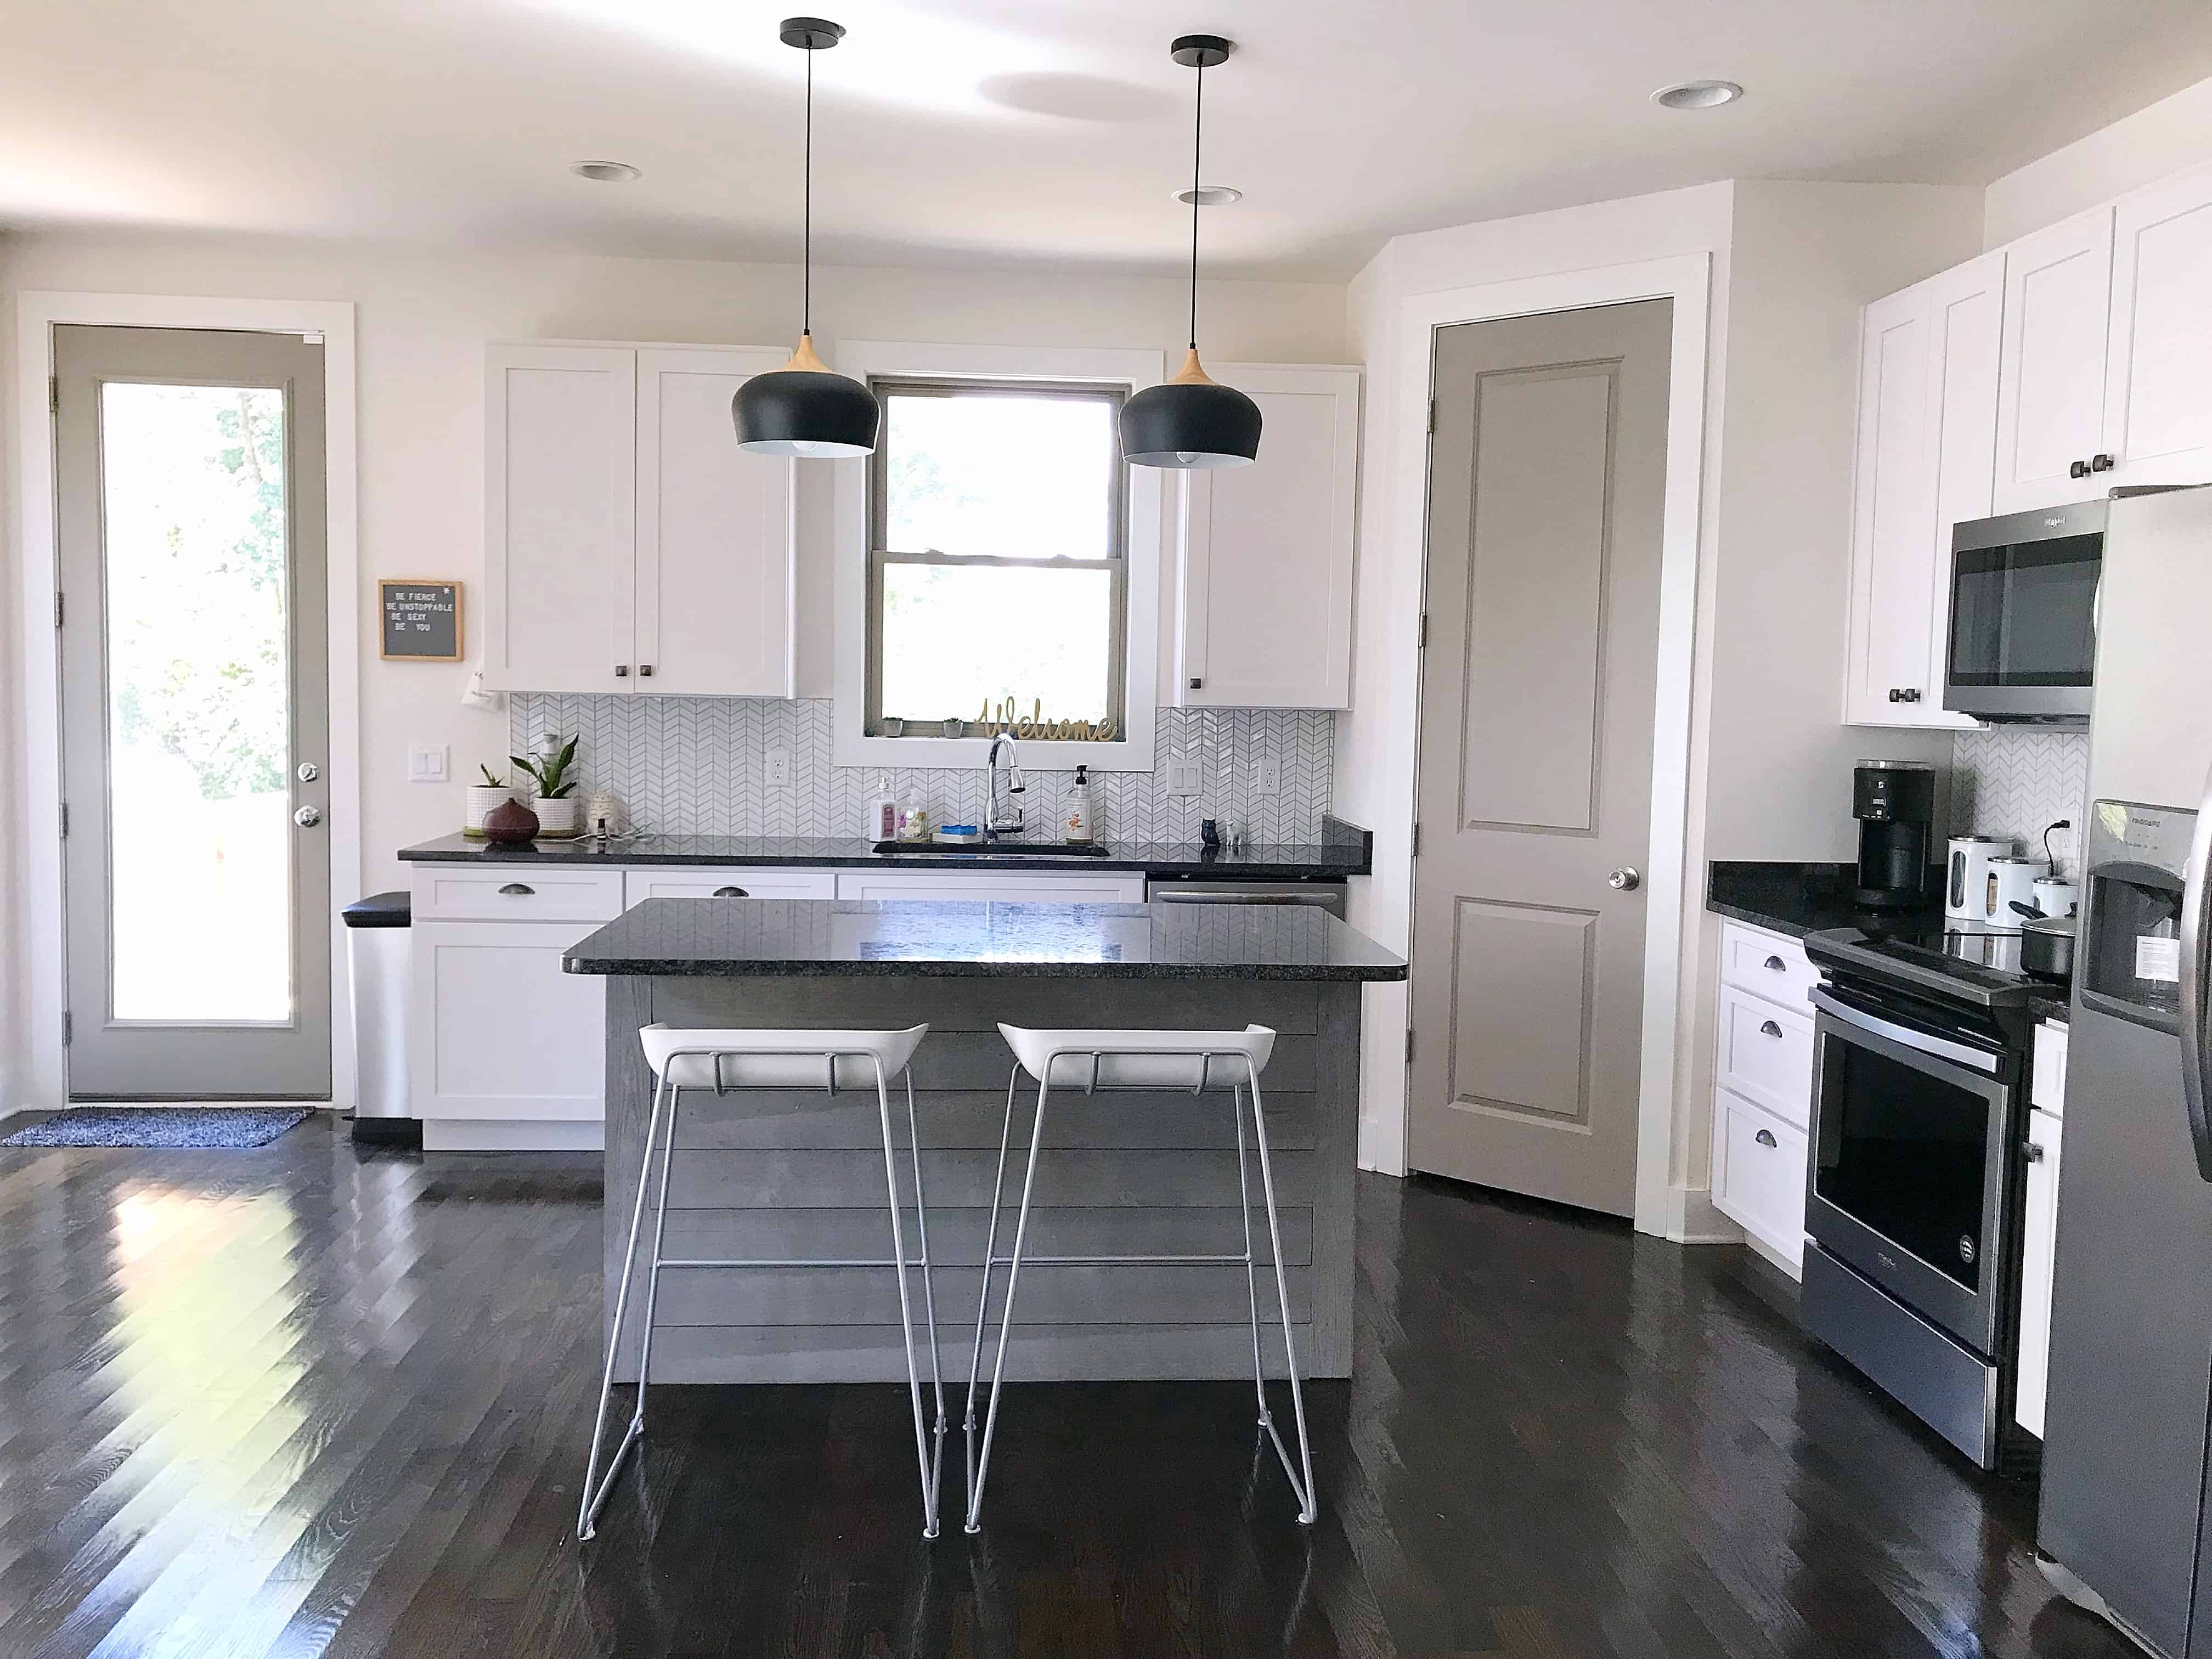 Monochrome kitchen with island and bar stools